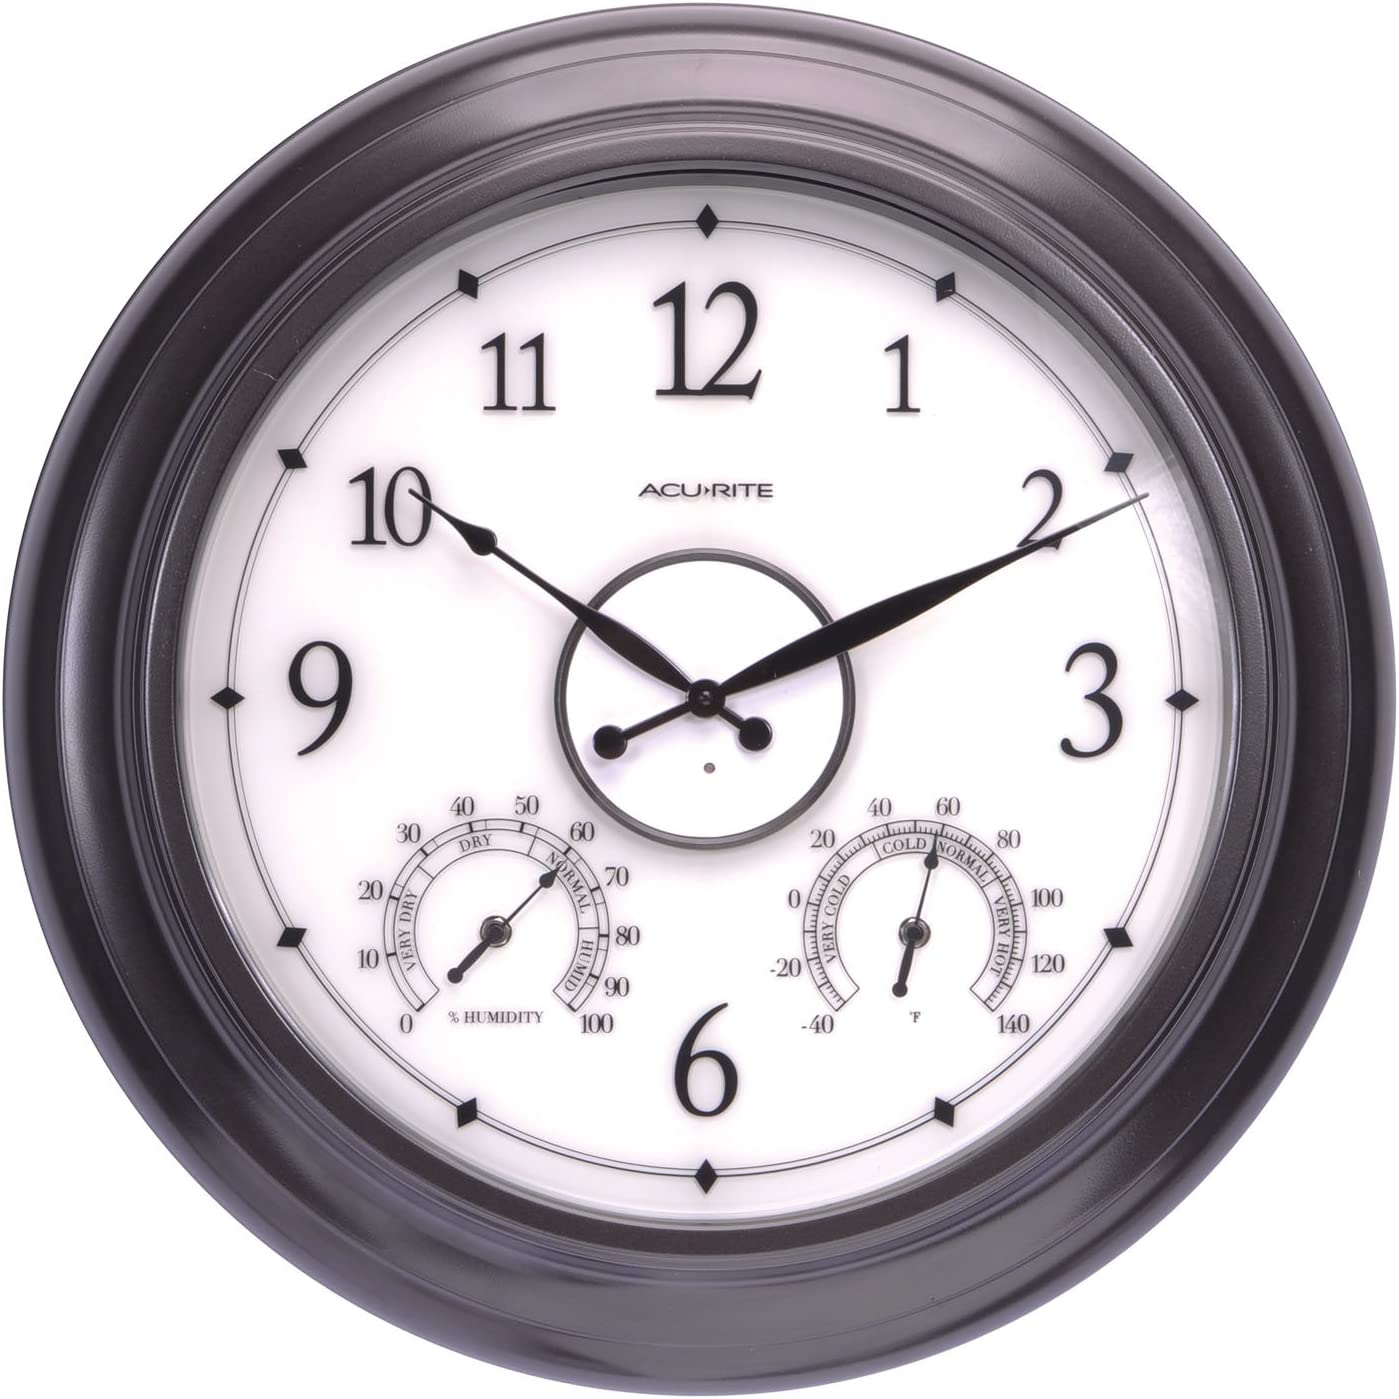 AcuRite 75133M Brand new LED Illuminated Outdoor Recommended Clock with Temperature an